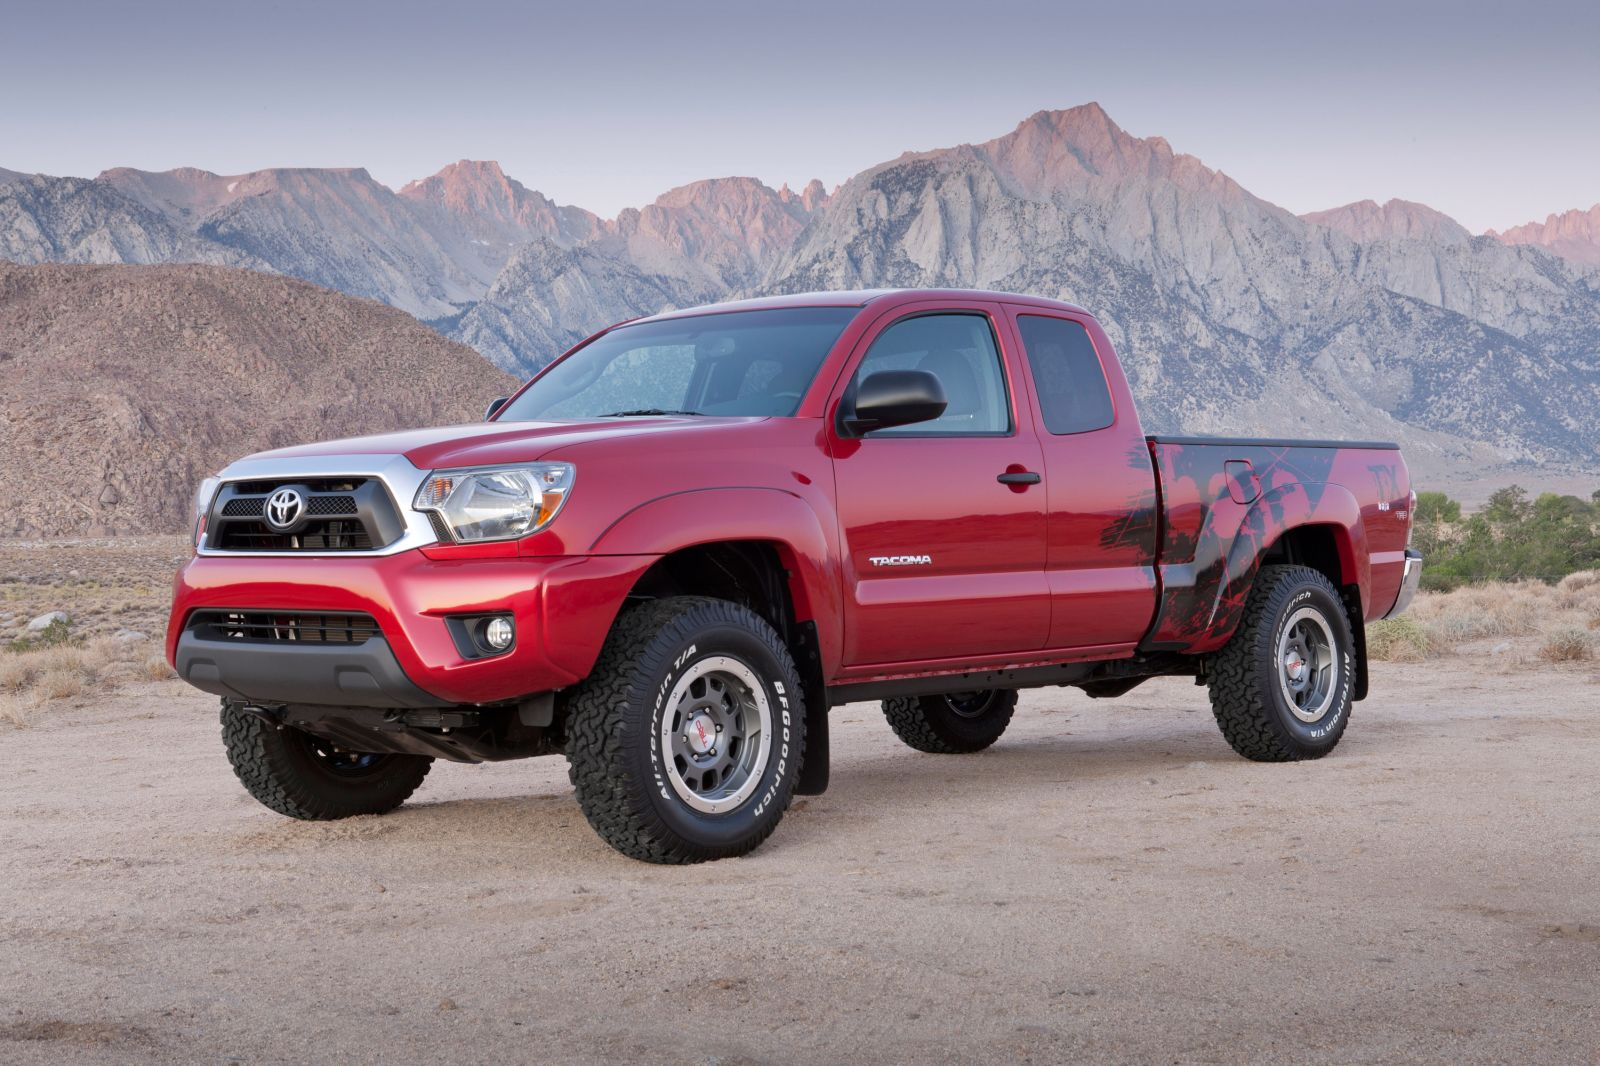 daily cars prices for 2012 toyota tacoma baja series. Black Bedroom Furniture Sets. Home Design Ideas